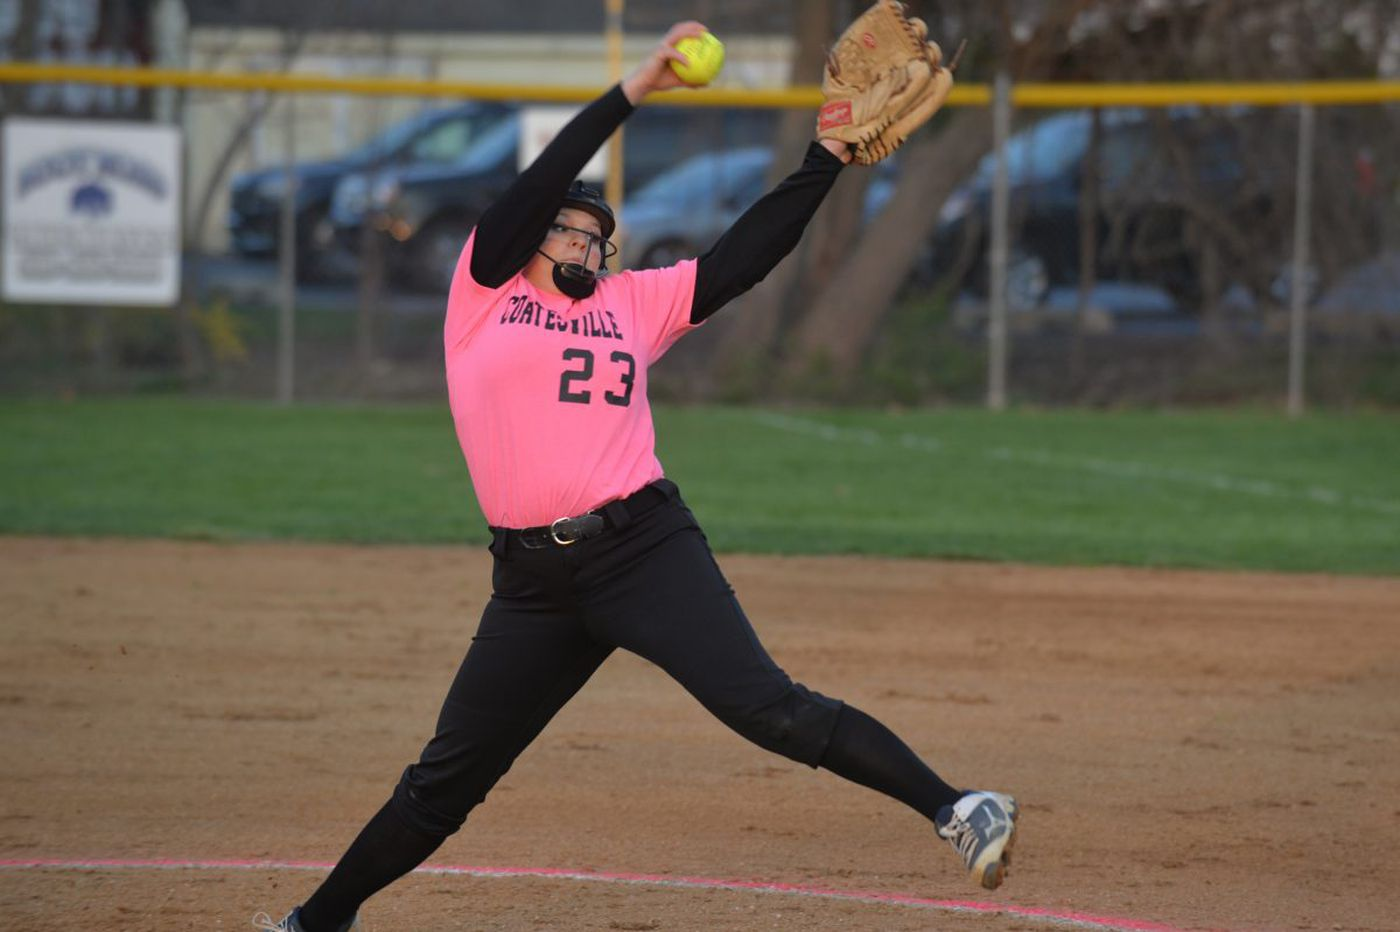 Wednesday's Pa. roundup: Sarah Dowalo pitches Neshaminy softball to victory